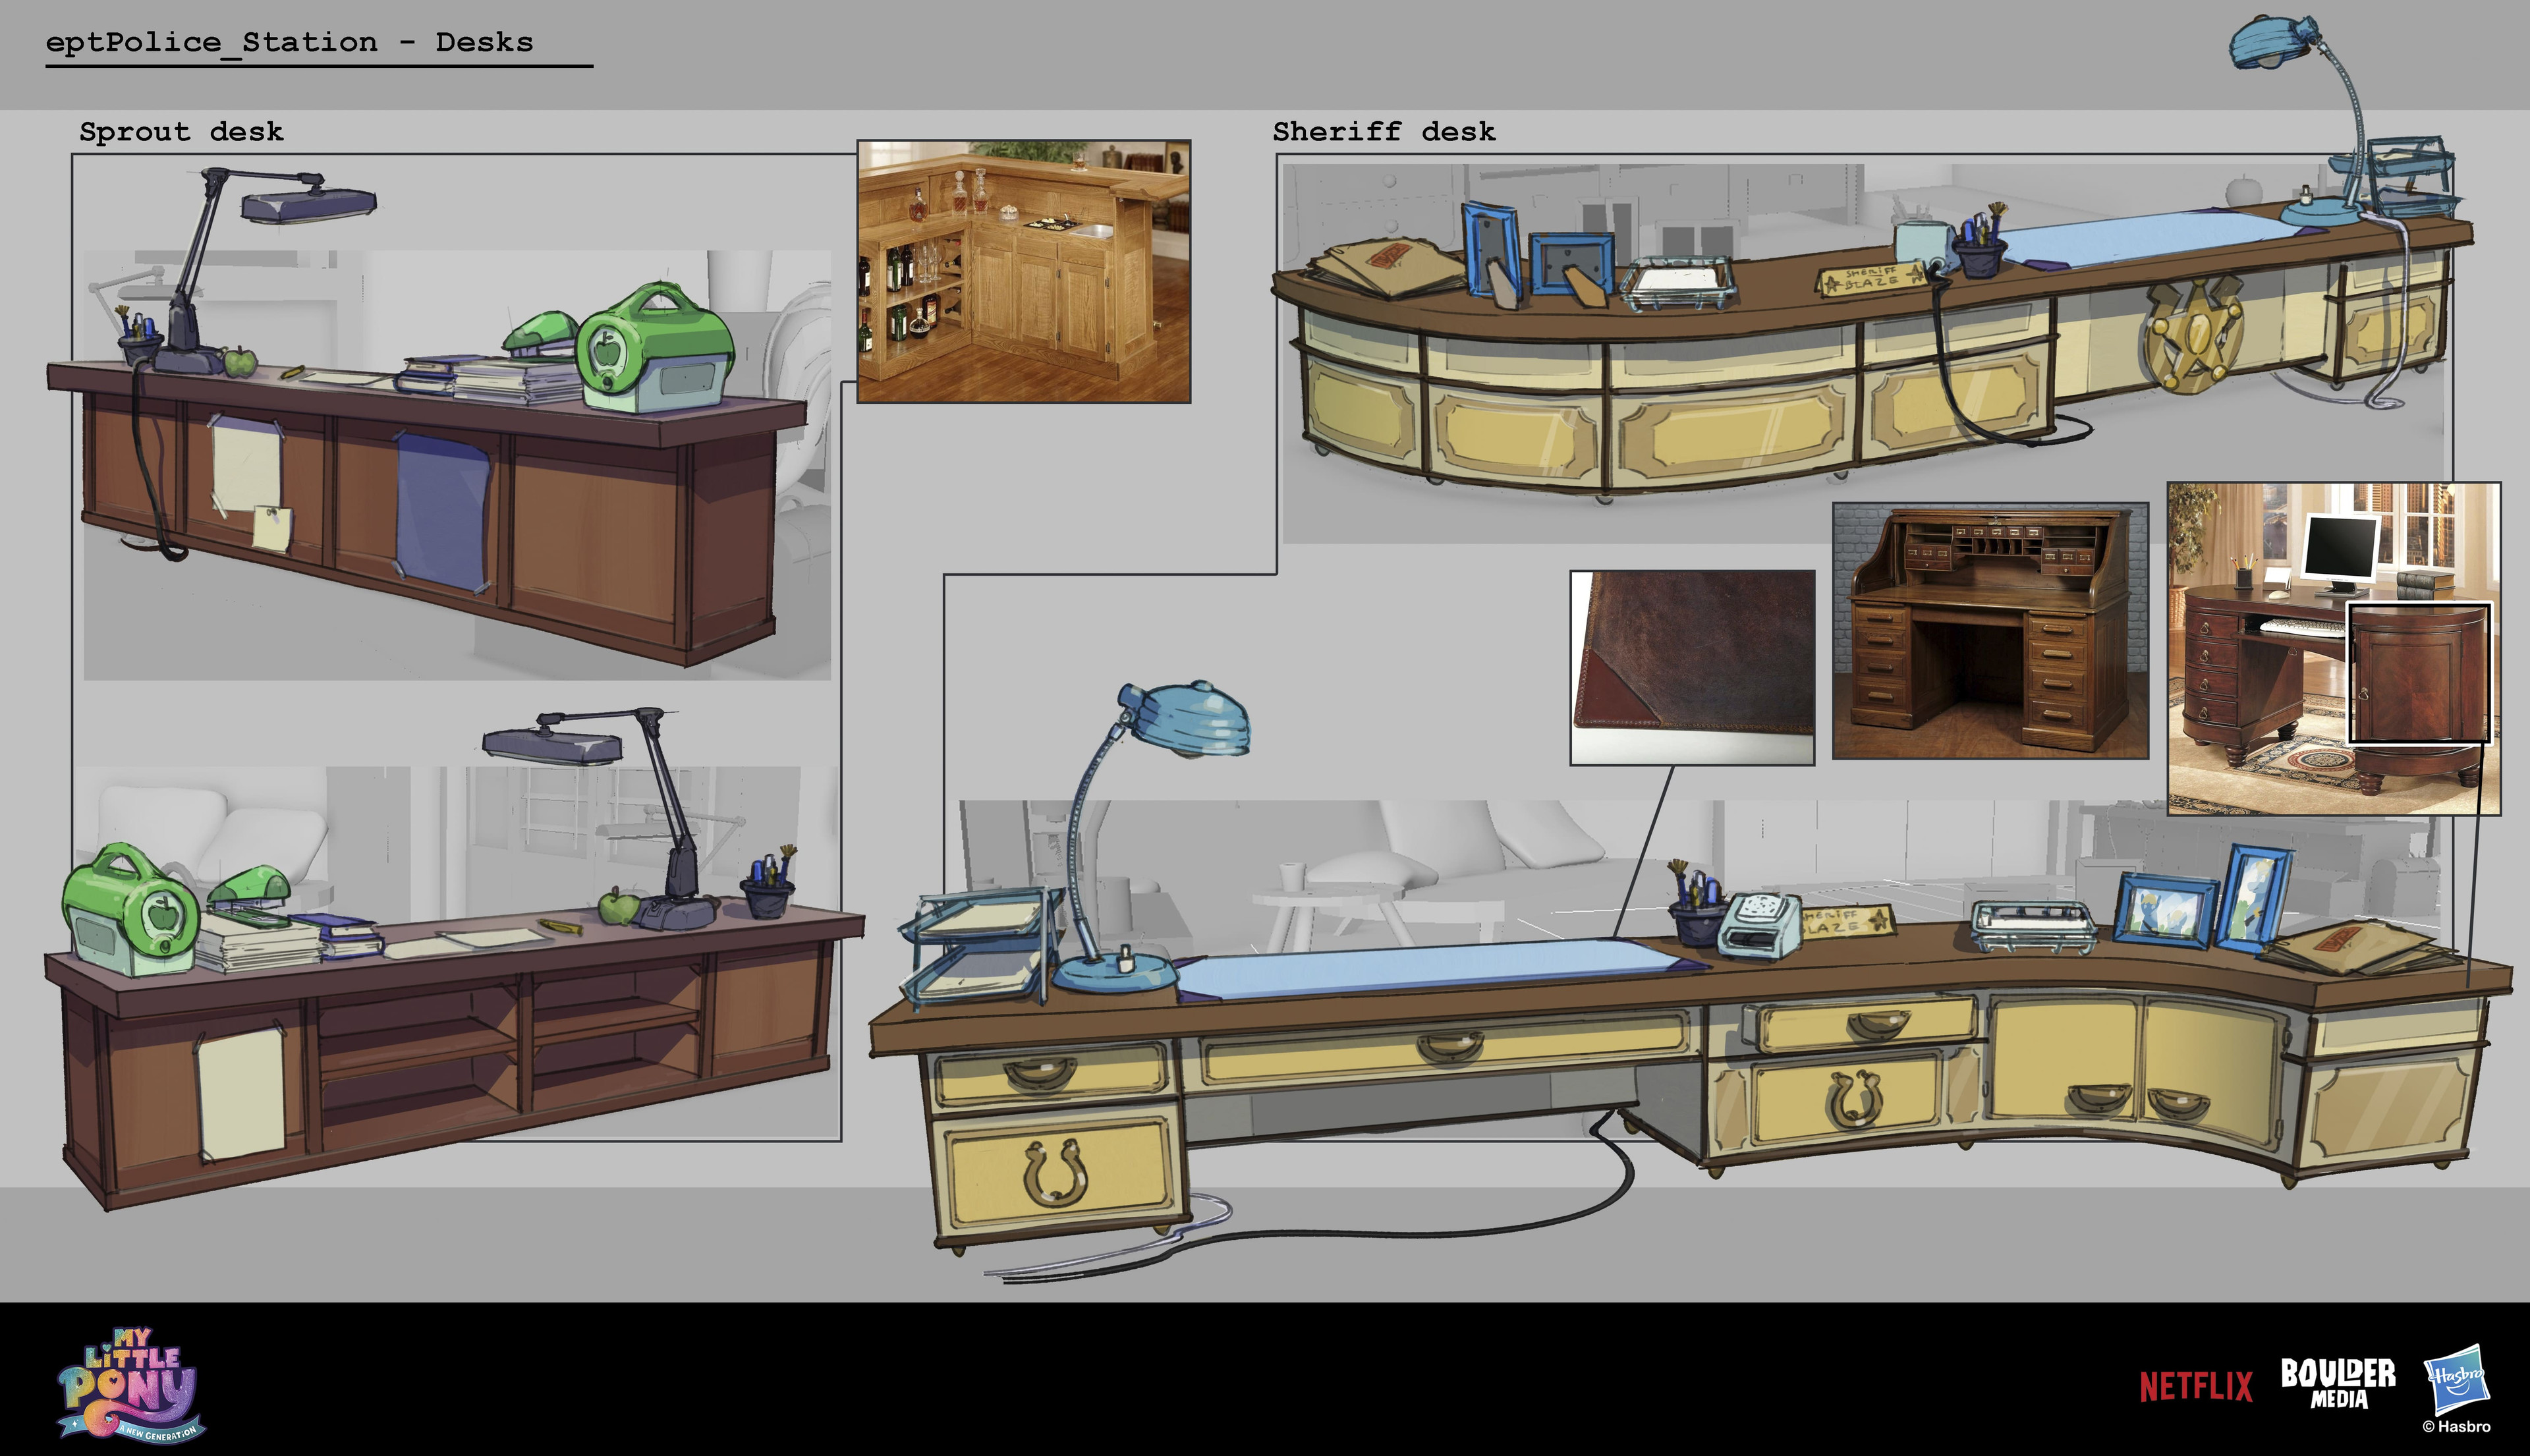 Some prop work for the sheriff and Sprout's desks.